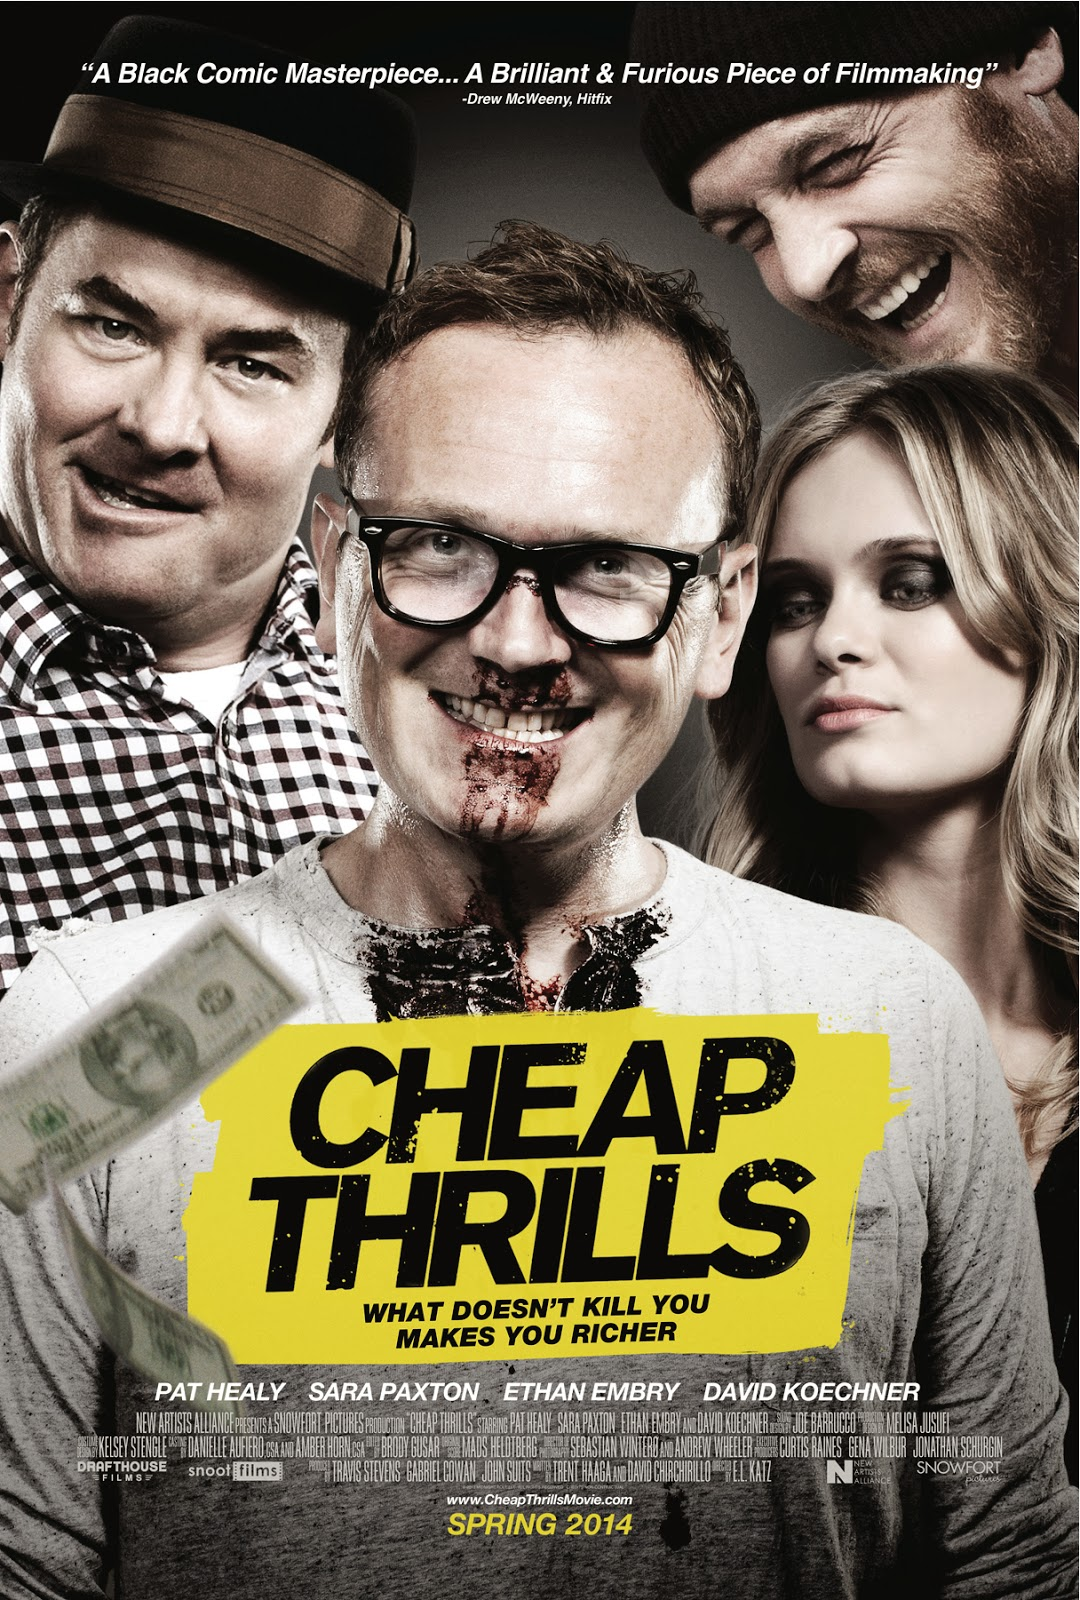 Drafthouse Films Cheap Thrills Clip Strip Club Sandwichjohnfilms Short Circuit Reboot By Tim Hill Might Give Johnny5 New Life Would You Do This For 500 Check Out The First Below From Critically Acclaimed Currently 100 Fresh On Rotten